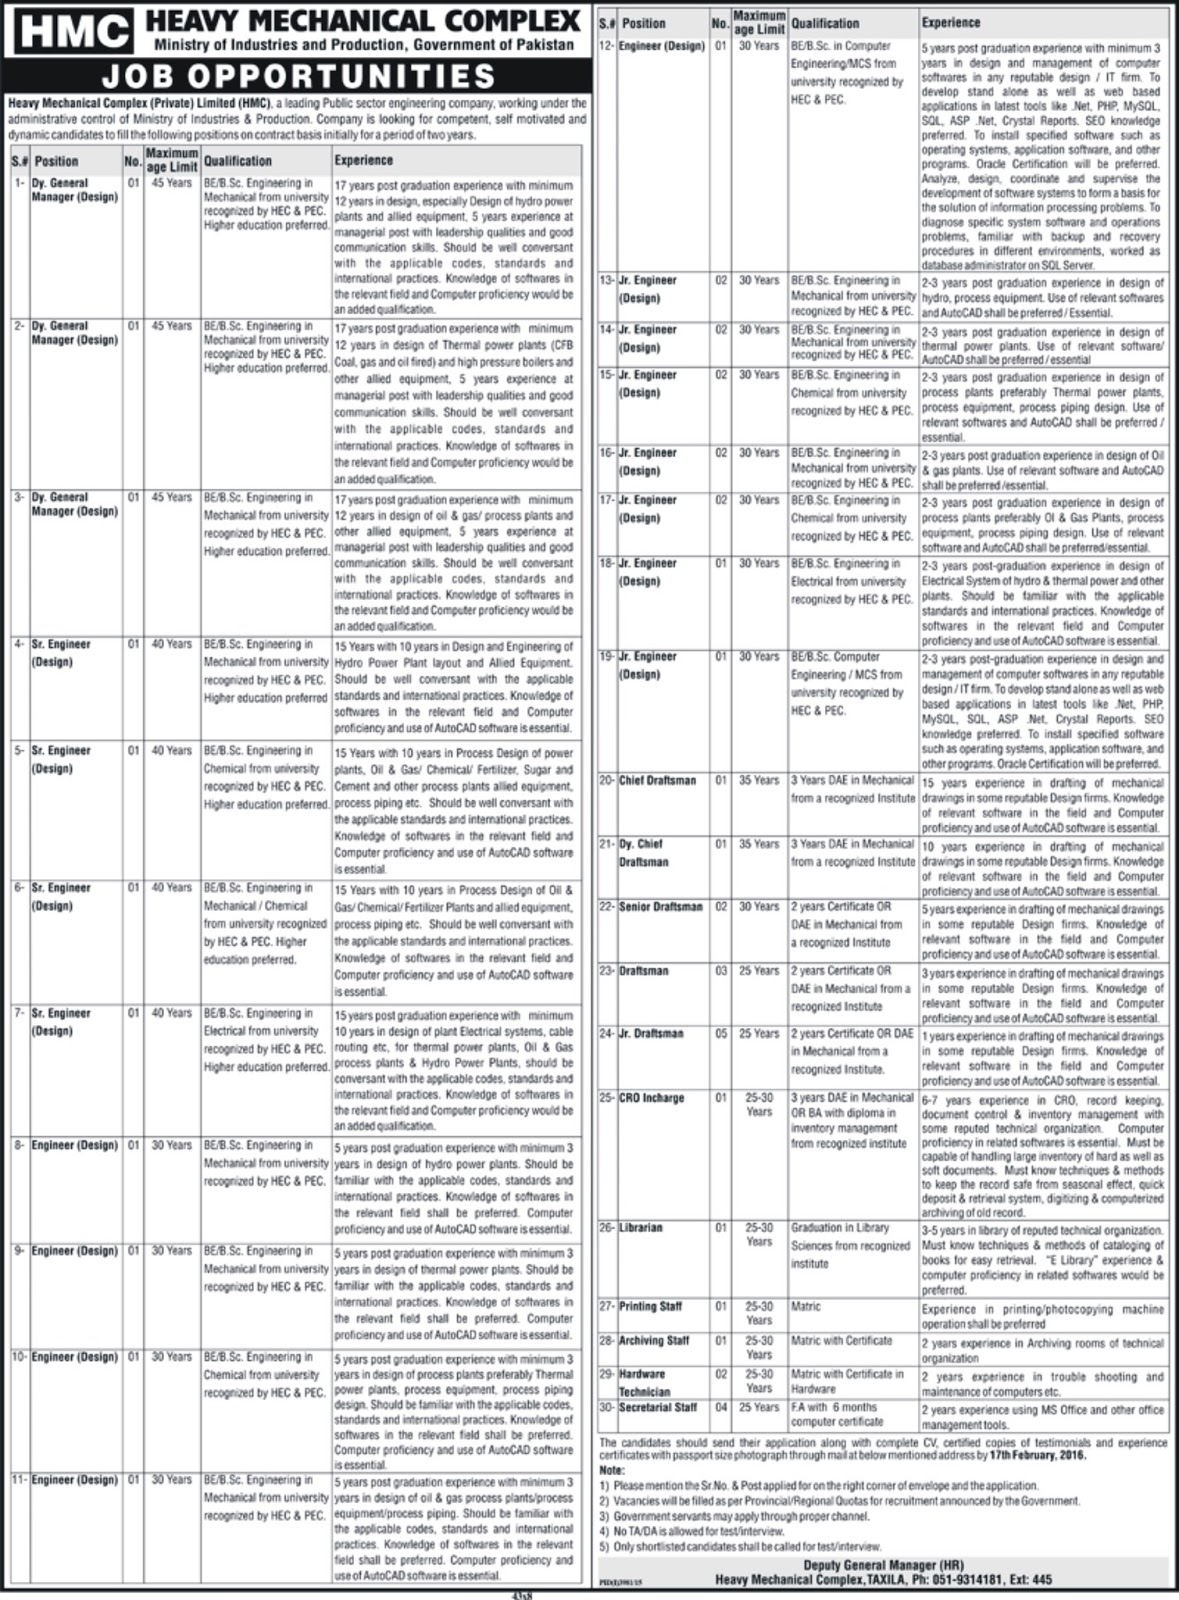 BE and DAE Jobs in HMC Heavy Mechanical Complex Jobs 2016